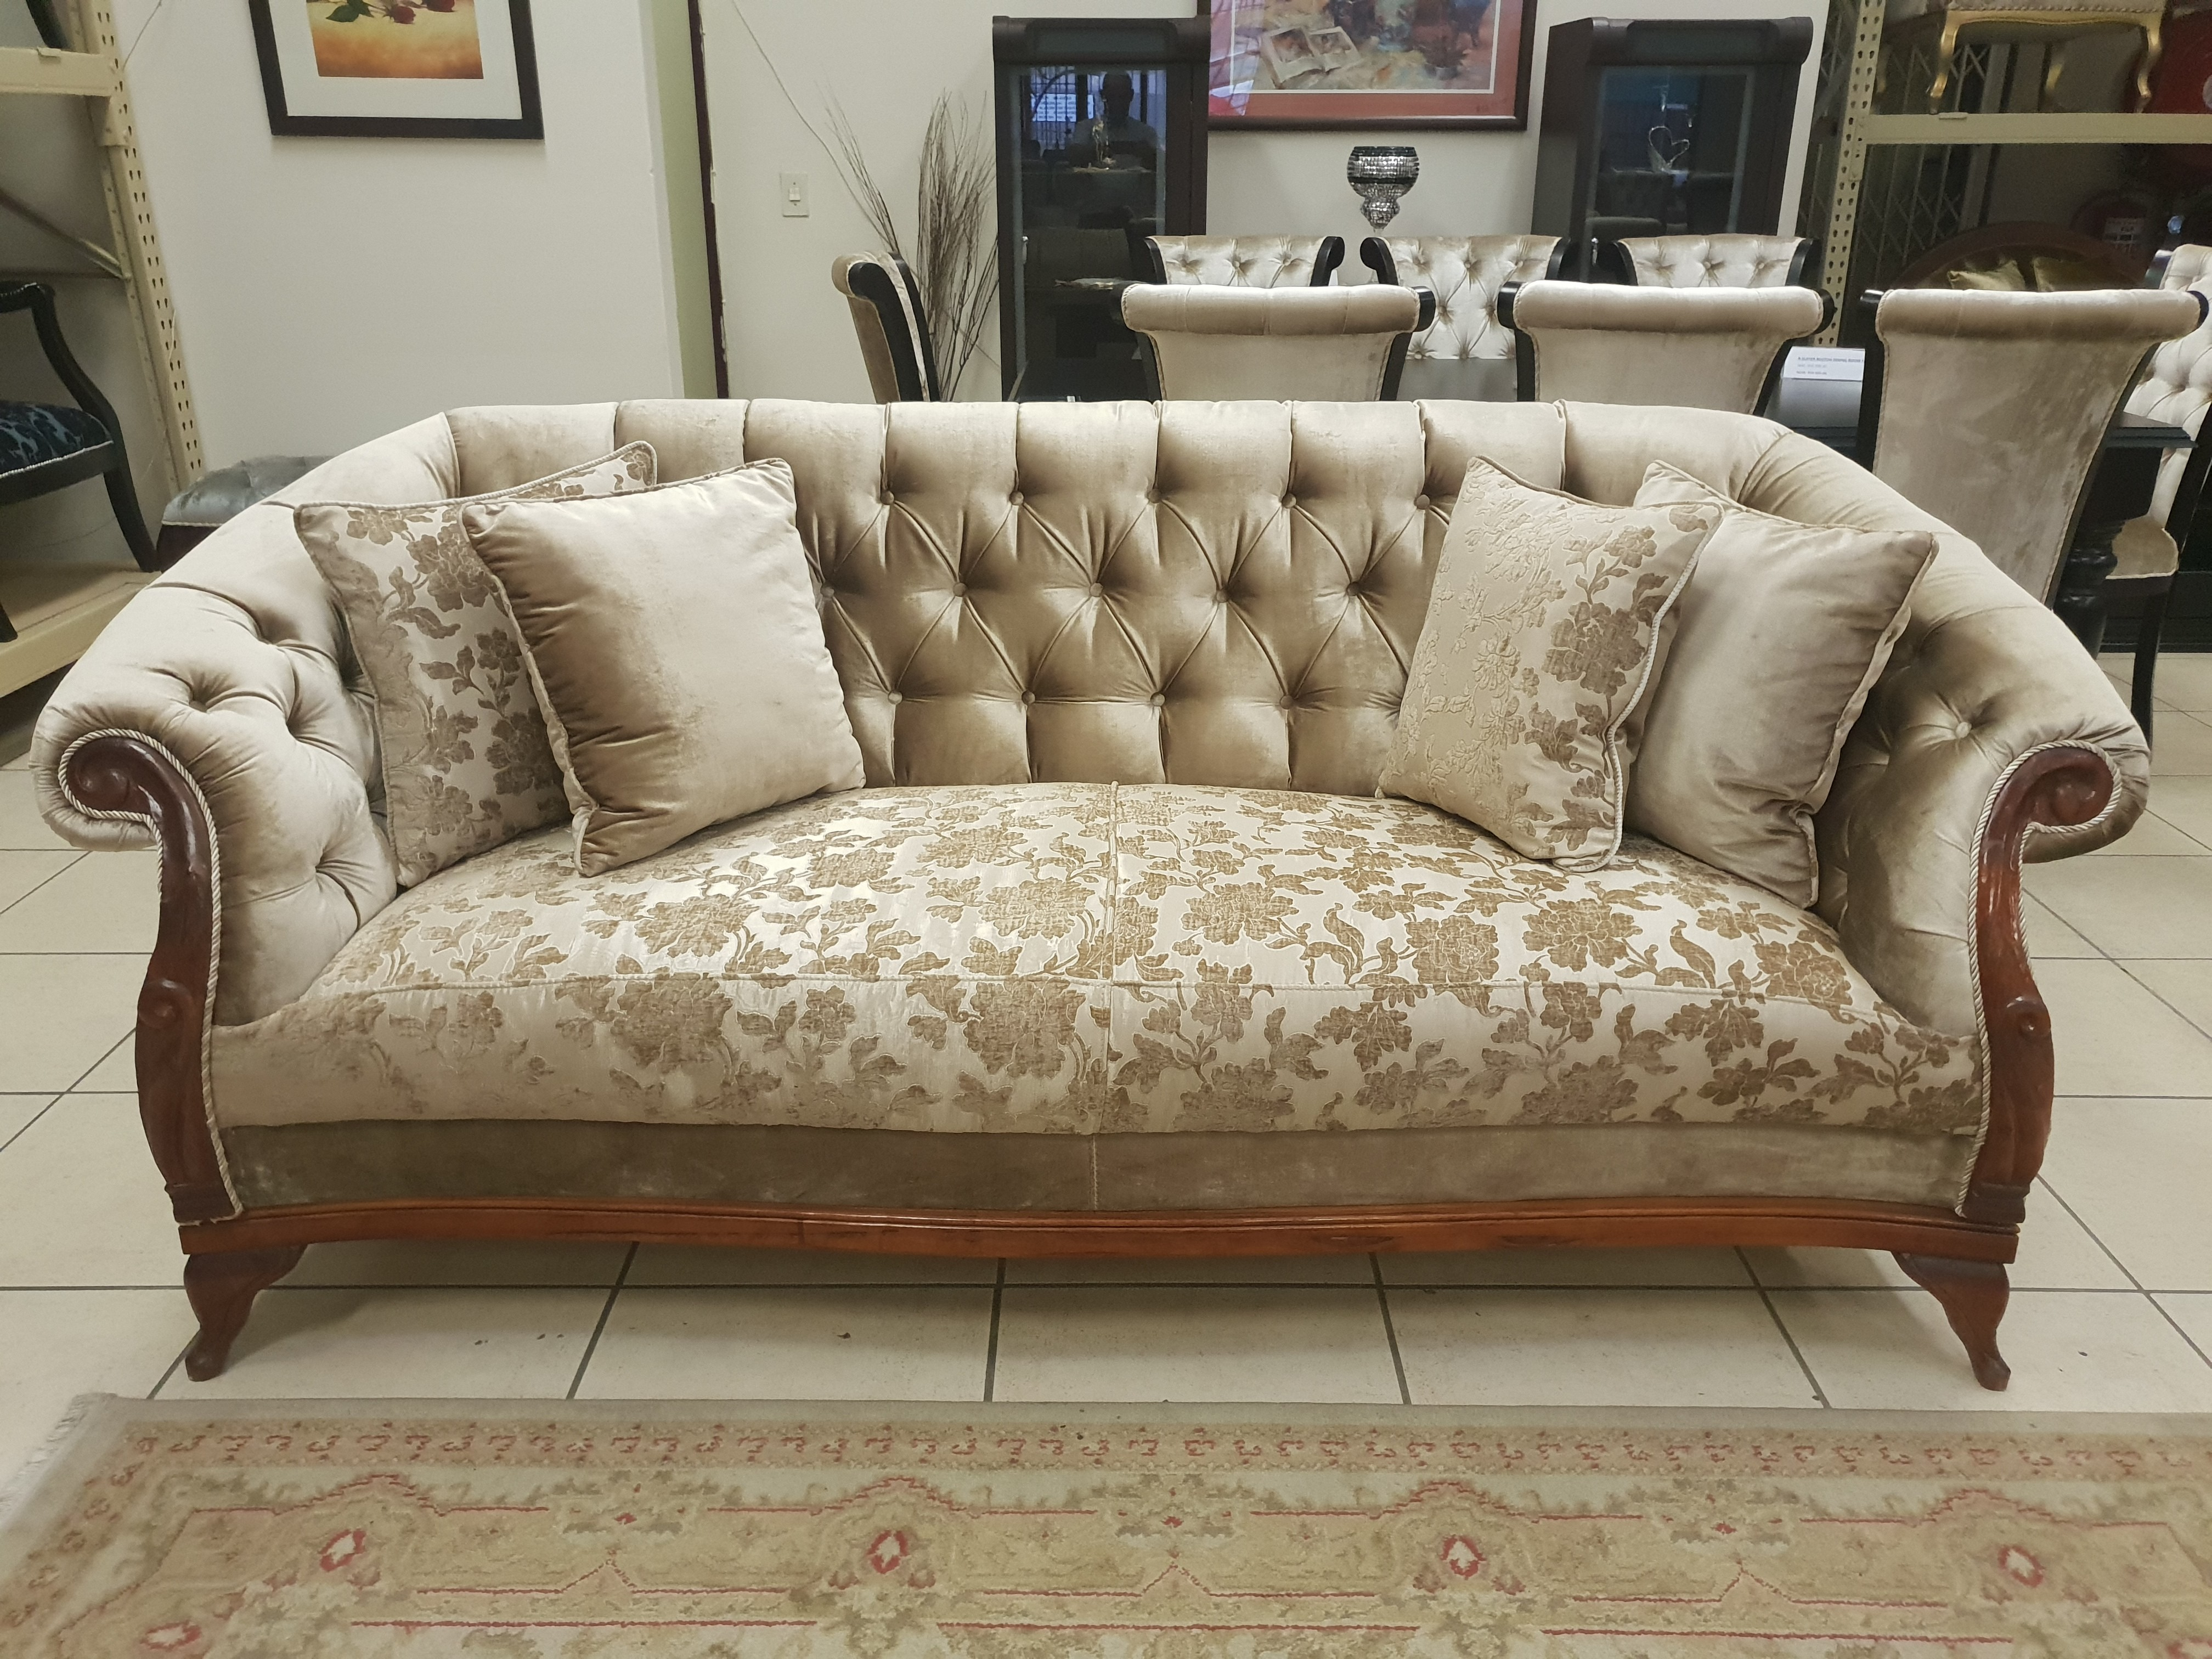 Couch Upholstery Fourways Ersoy Furniture Manufactures And Sells Quality Designer